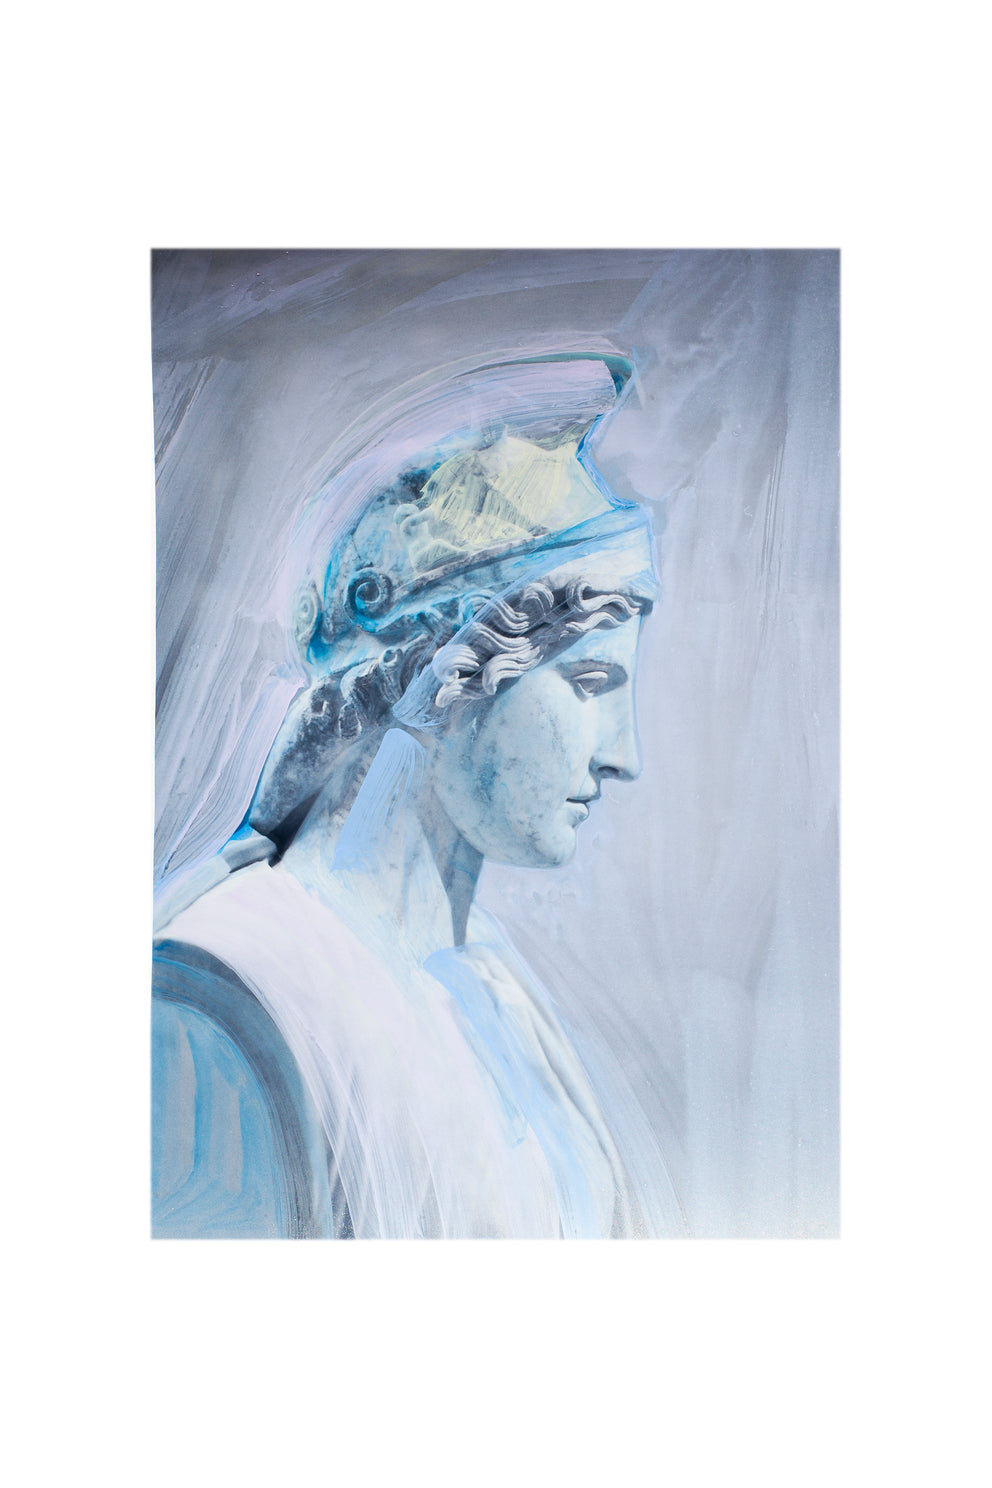 Sara VanDerBeek: Ancient Woman 2022 Study No. 2